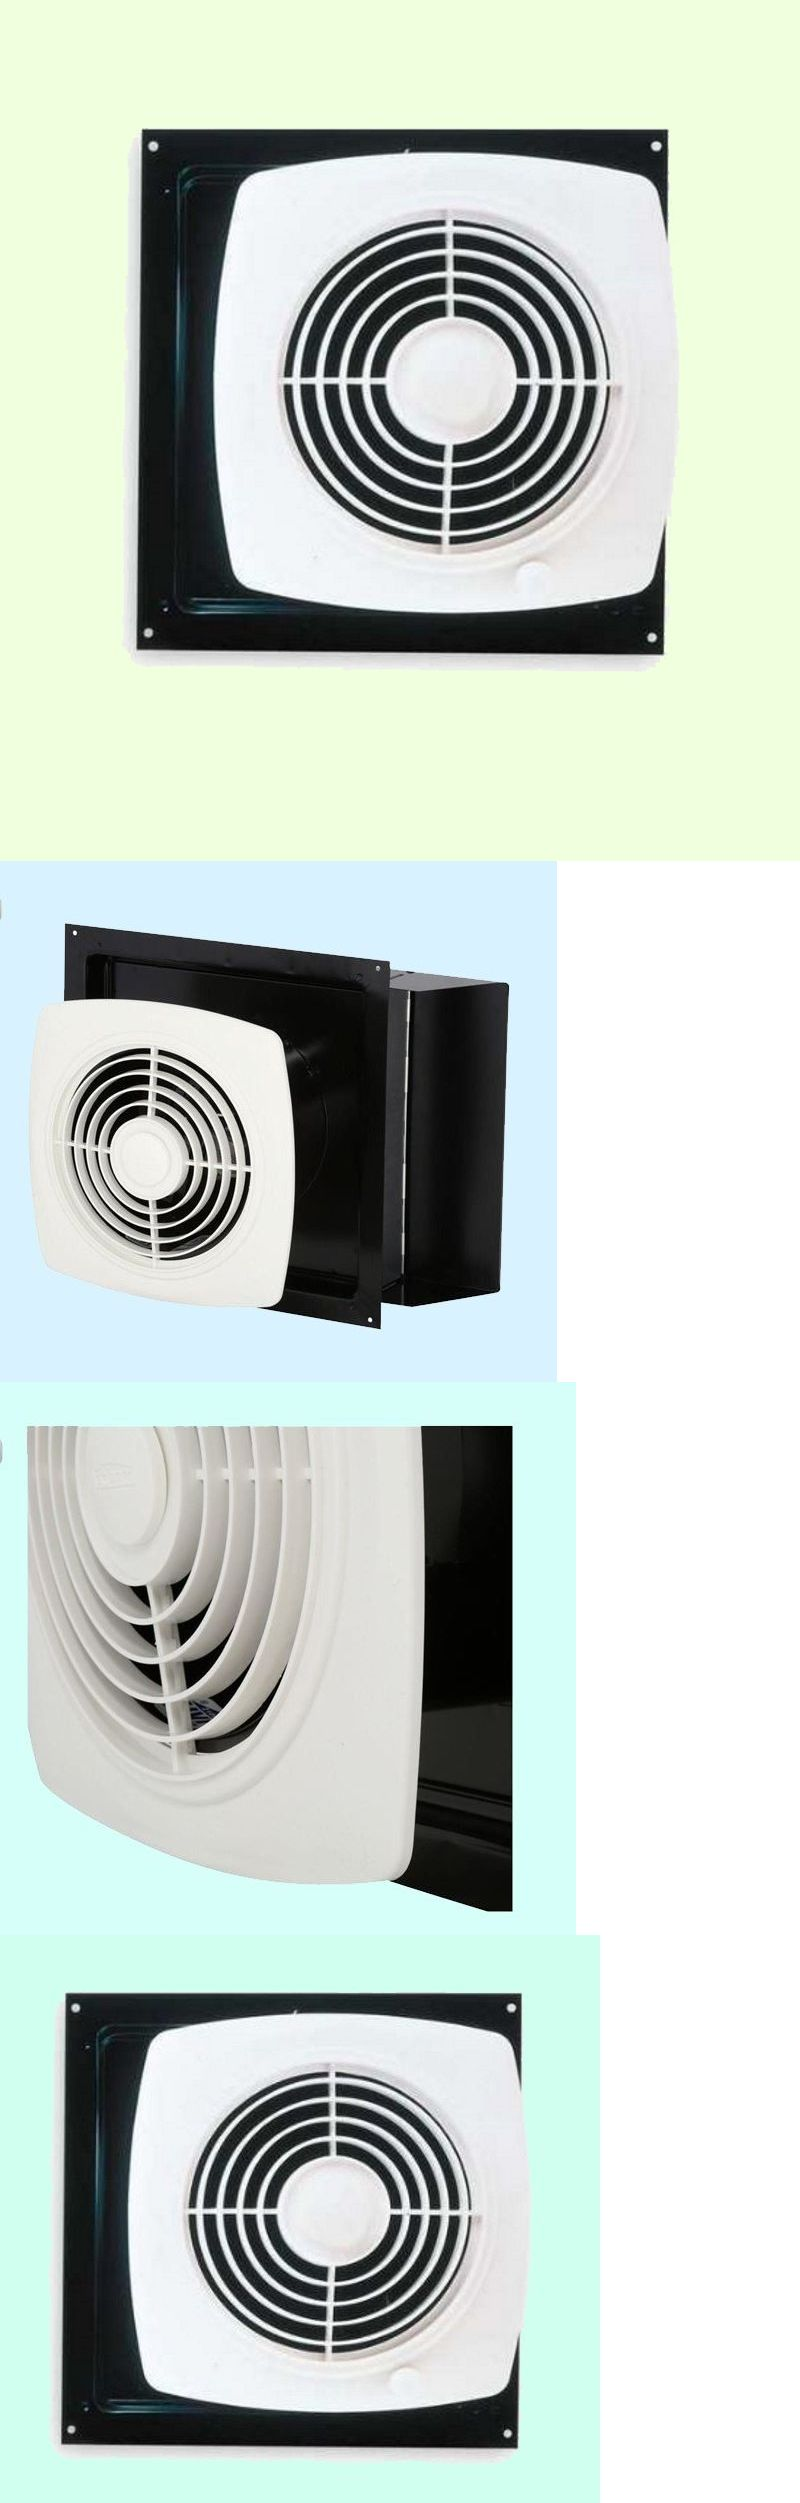 Range Hoods 71253 Kitchen Exhaust Fan White Through Wall Ventilation Laundry Room Workshop Buy It Exhaust Fan Kitchen Exhaust Fan Kitchen Exhaust